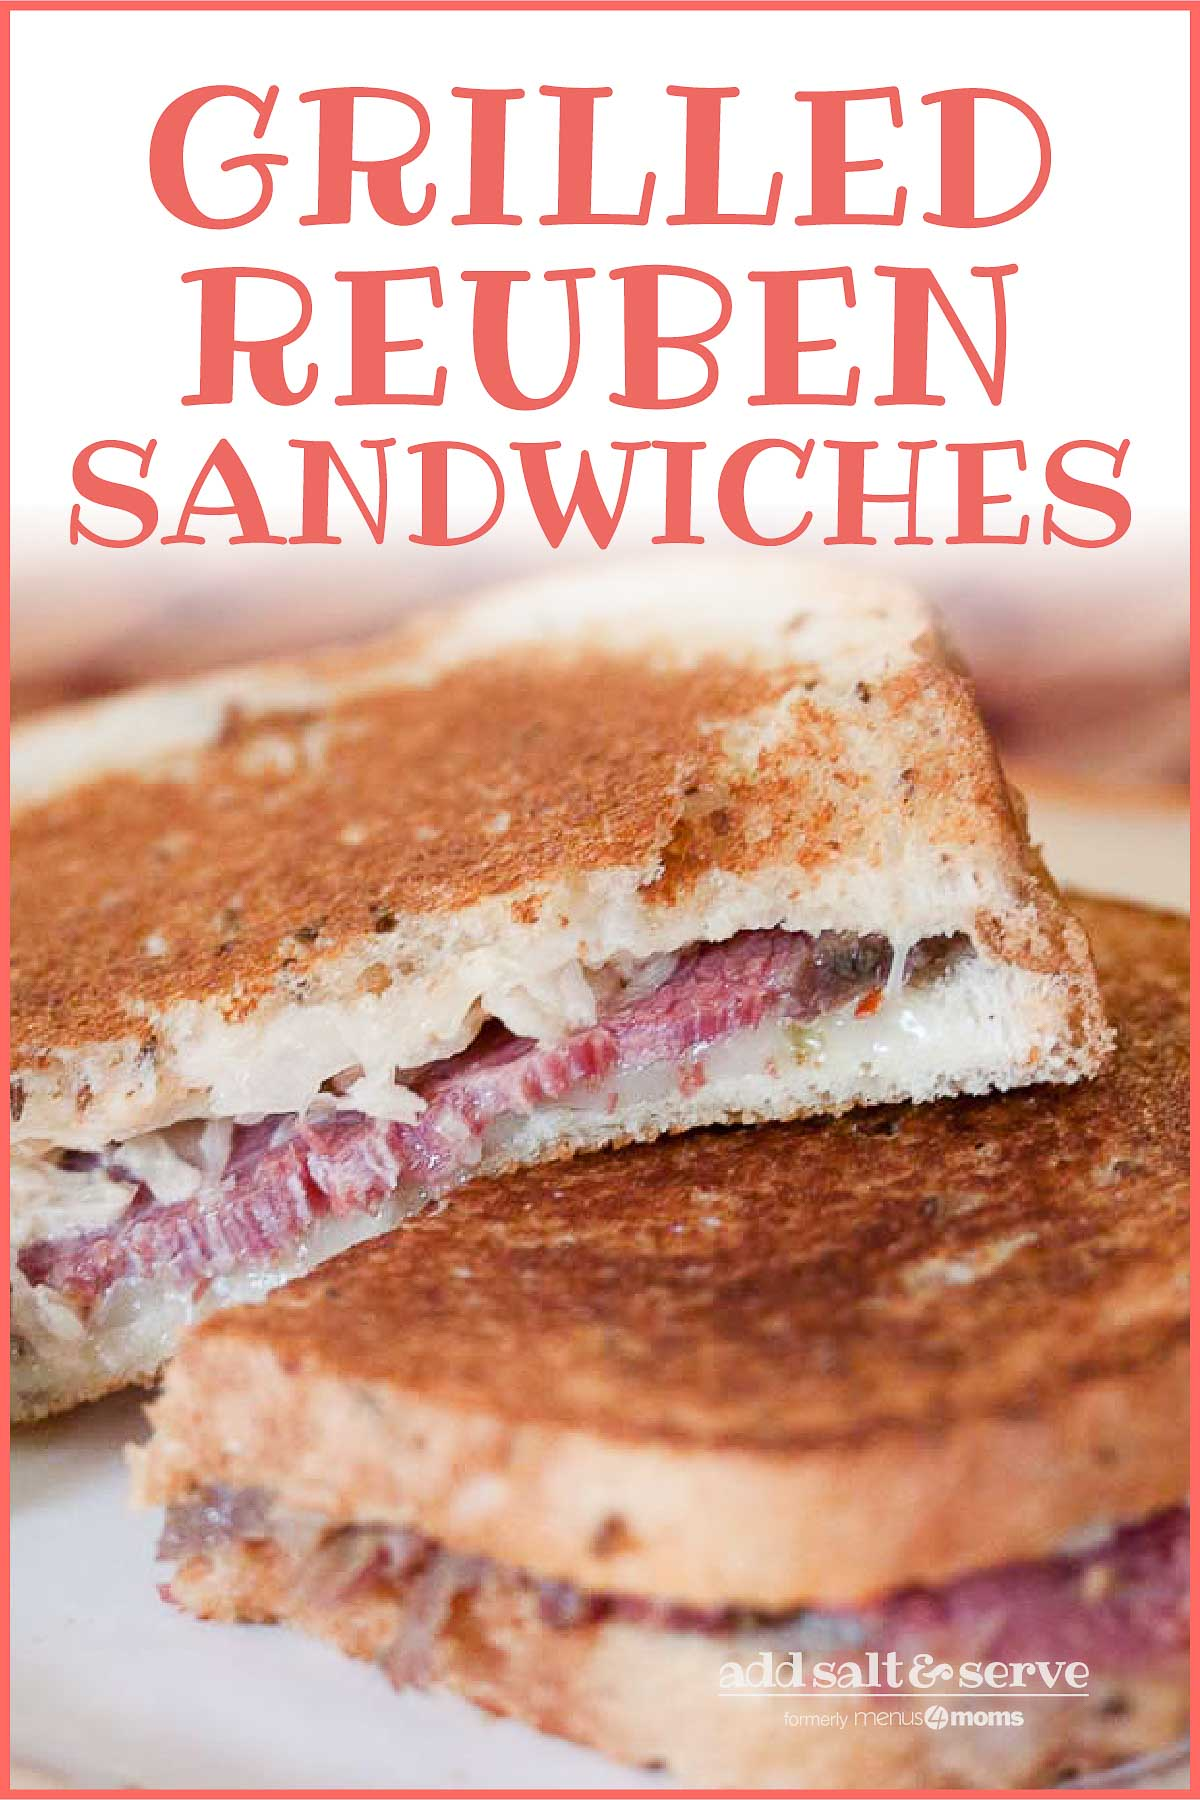 Two Reuben sandwiches on a white plate; text Grilled Reuben Sandwiches Add Salt & Serve formerly Menus4Moms